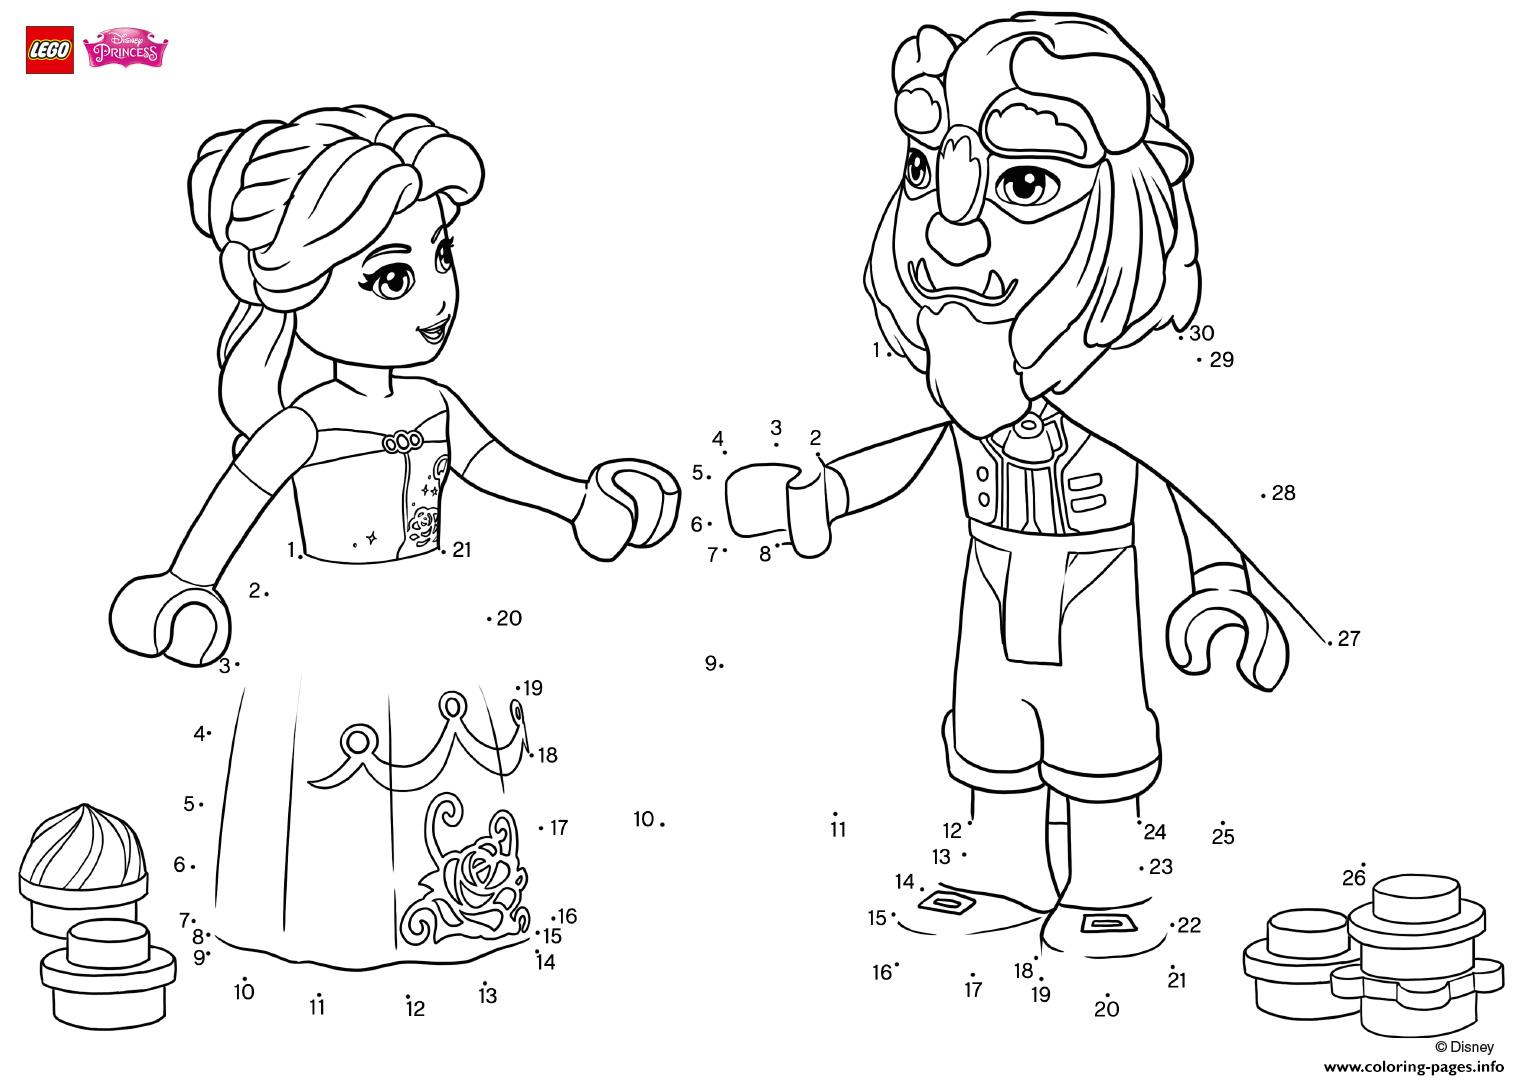 Have Fun Completing The Drawing Of Beauty And Beast Lego Disney Coloring Pages